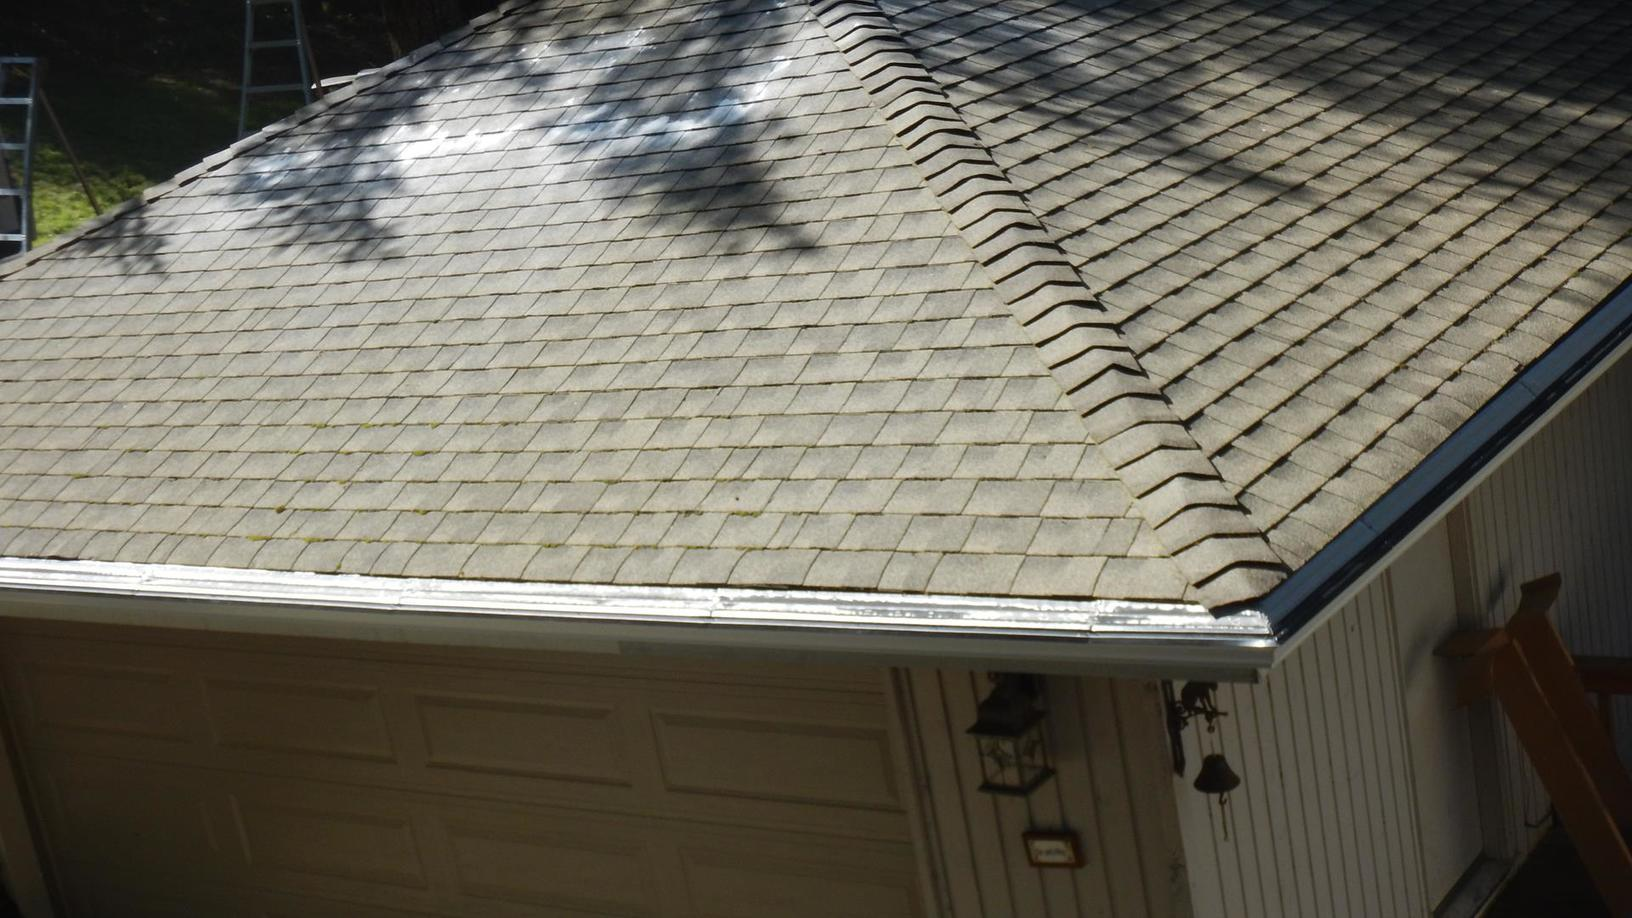 Getting the roof cleaned